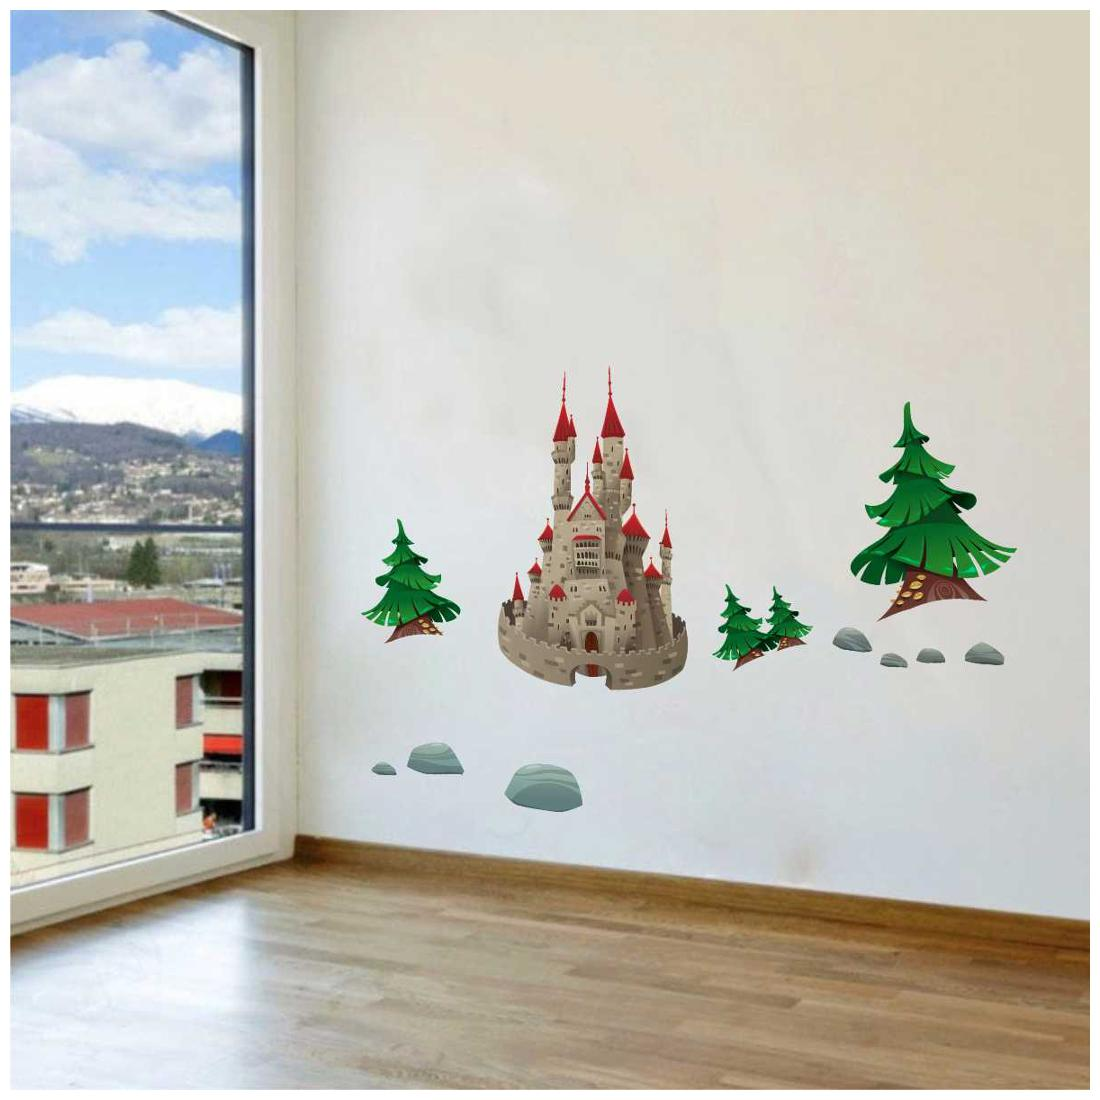 Rawpockets Wall Stickers ' Castle and Fantasy World' Wall Decal Sticker ' by Raw Pockets